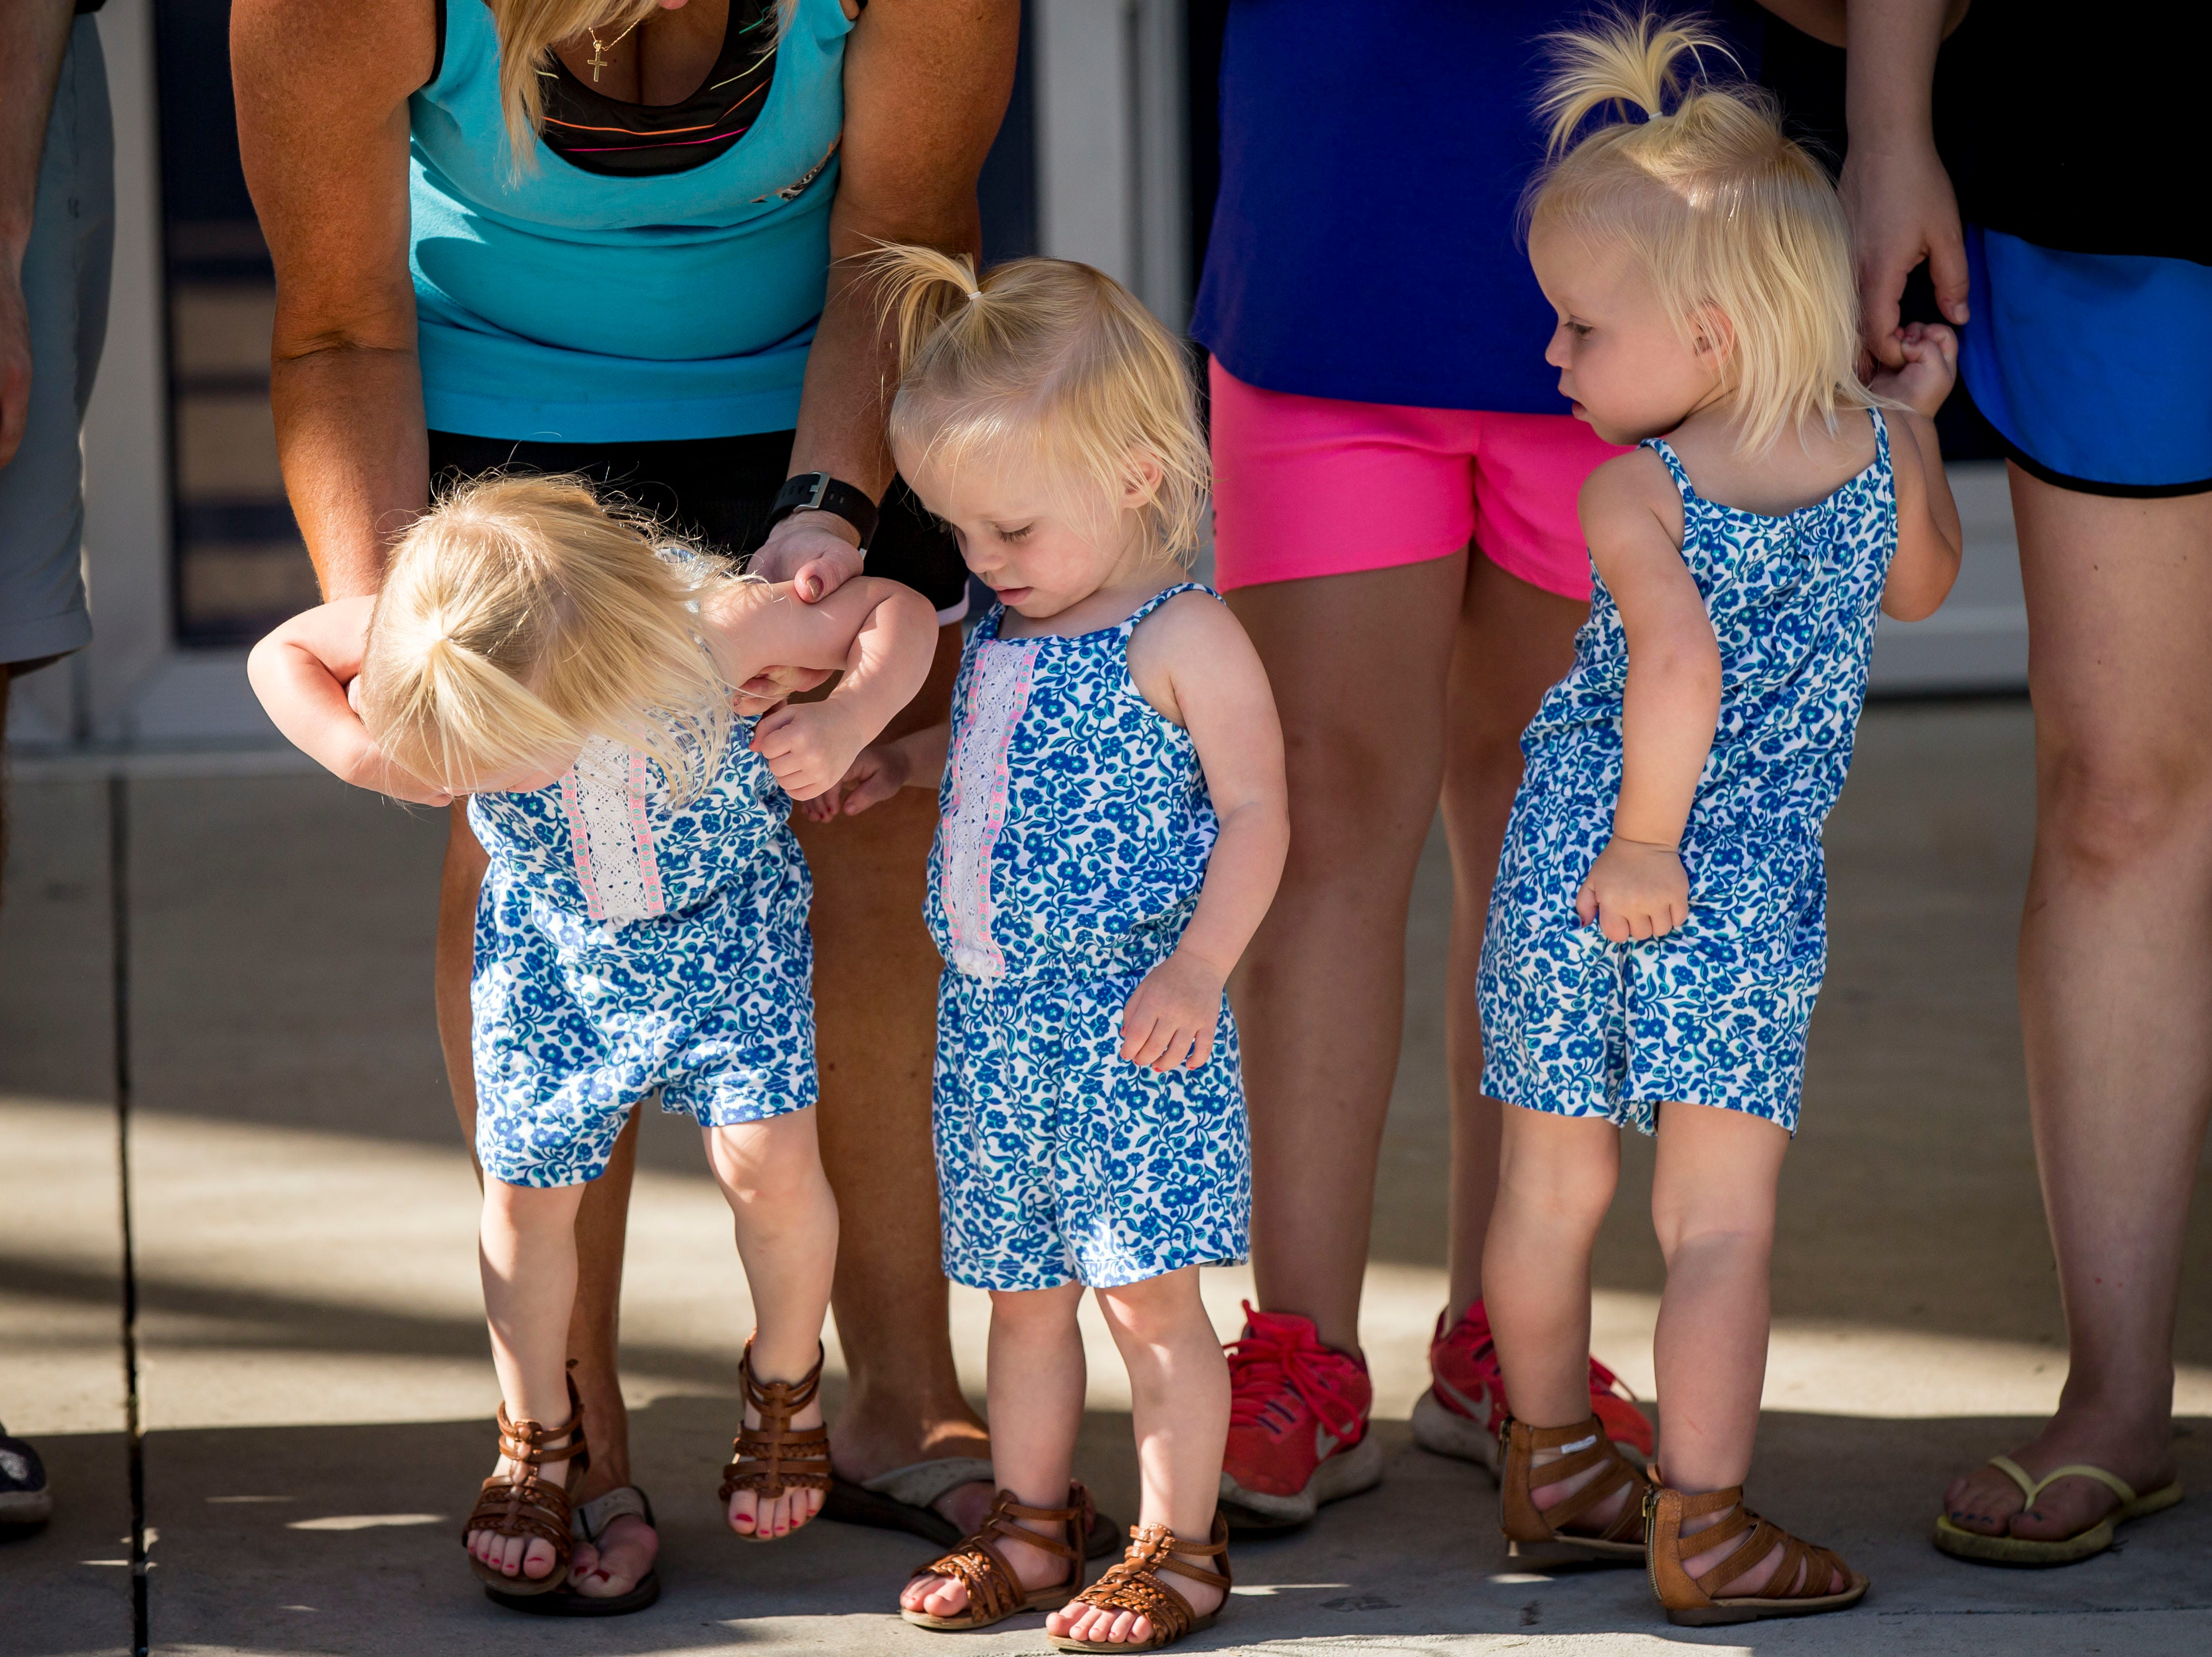 Charlotte, left, Nora and Hazel Hanssan of Grinnell compete in the two-year-old most alike category during the Twins, Triplets and More Contest on the Anne and Bill Riley Stage at the 2018 Iowa State Fair in Des Moines Thursday, Aug. 9, 2018.